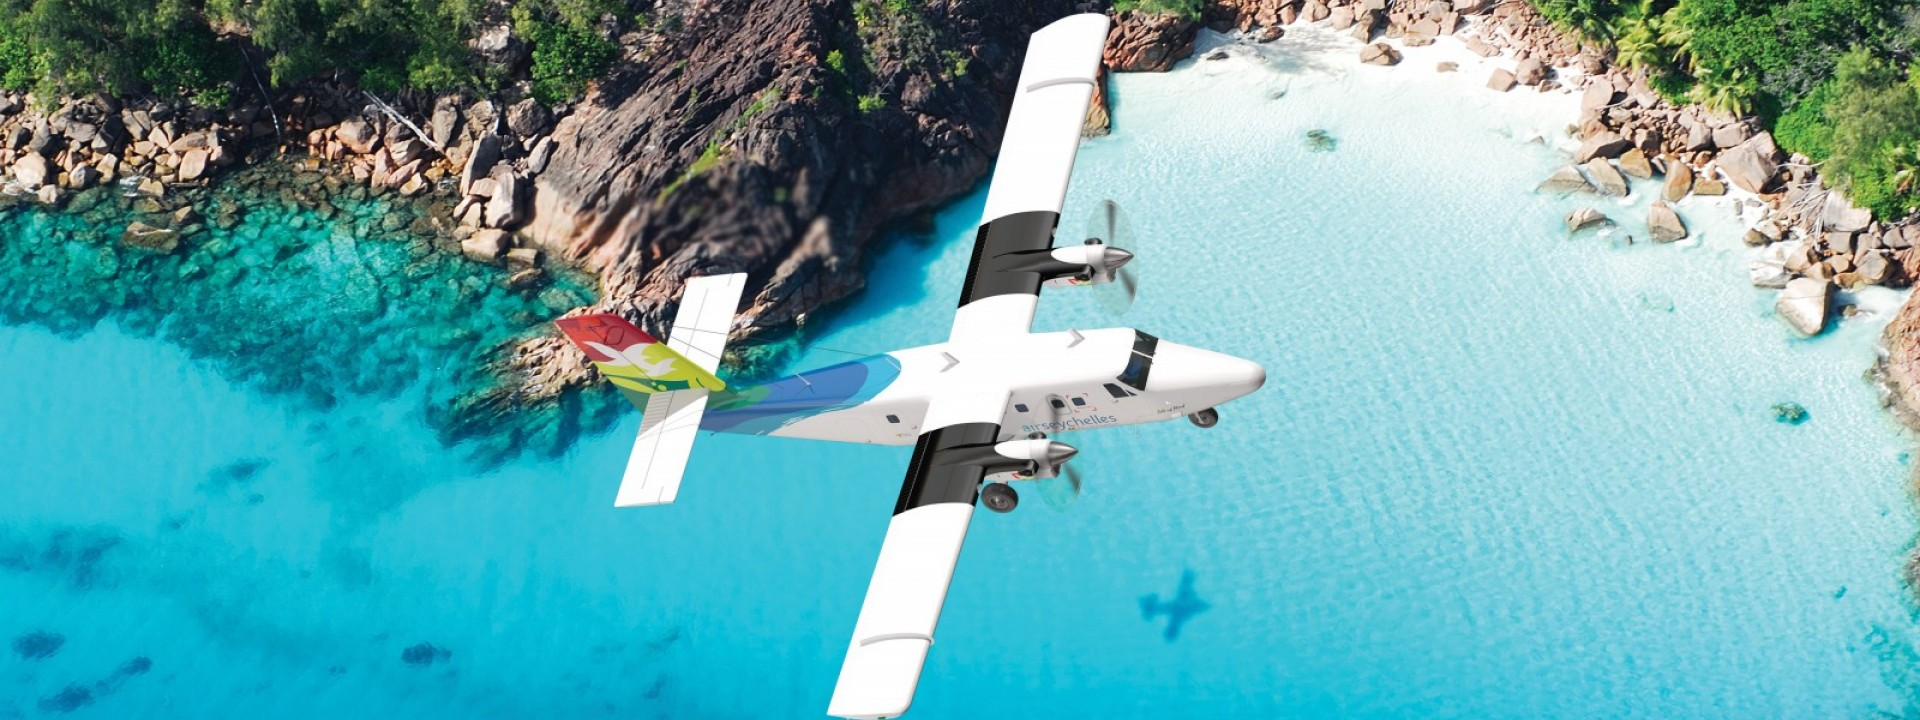 Air Seychelles Domestic Twin Otter Flying over island beach